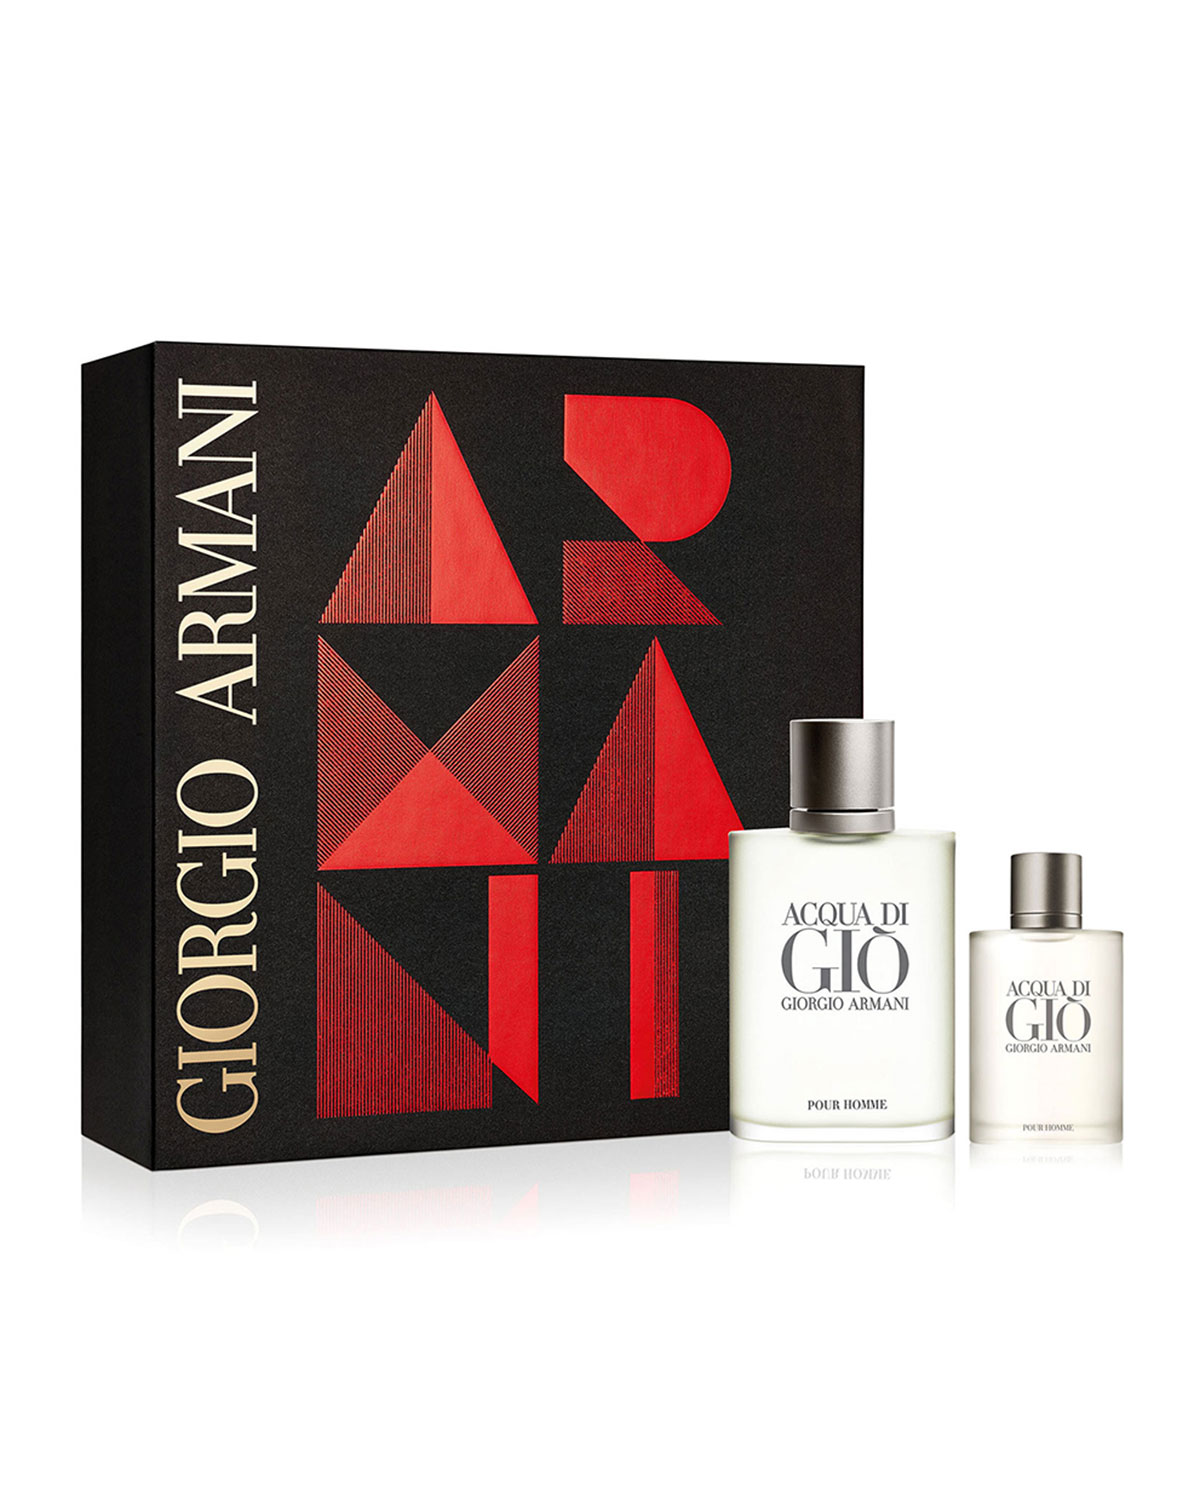 Giorgio Armani LIMITED EDITION ACQUA DI GIO GIFT SET ($133 VALUE)